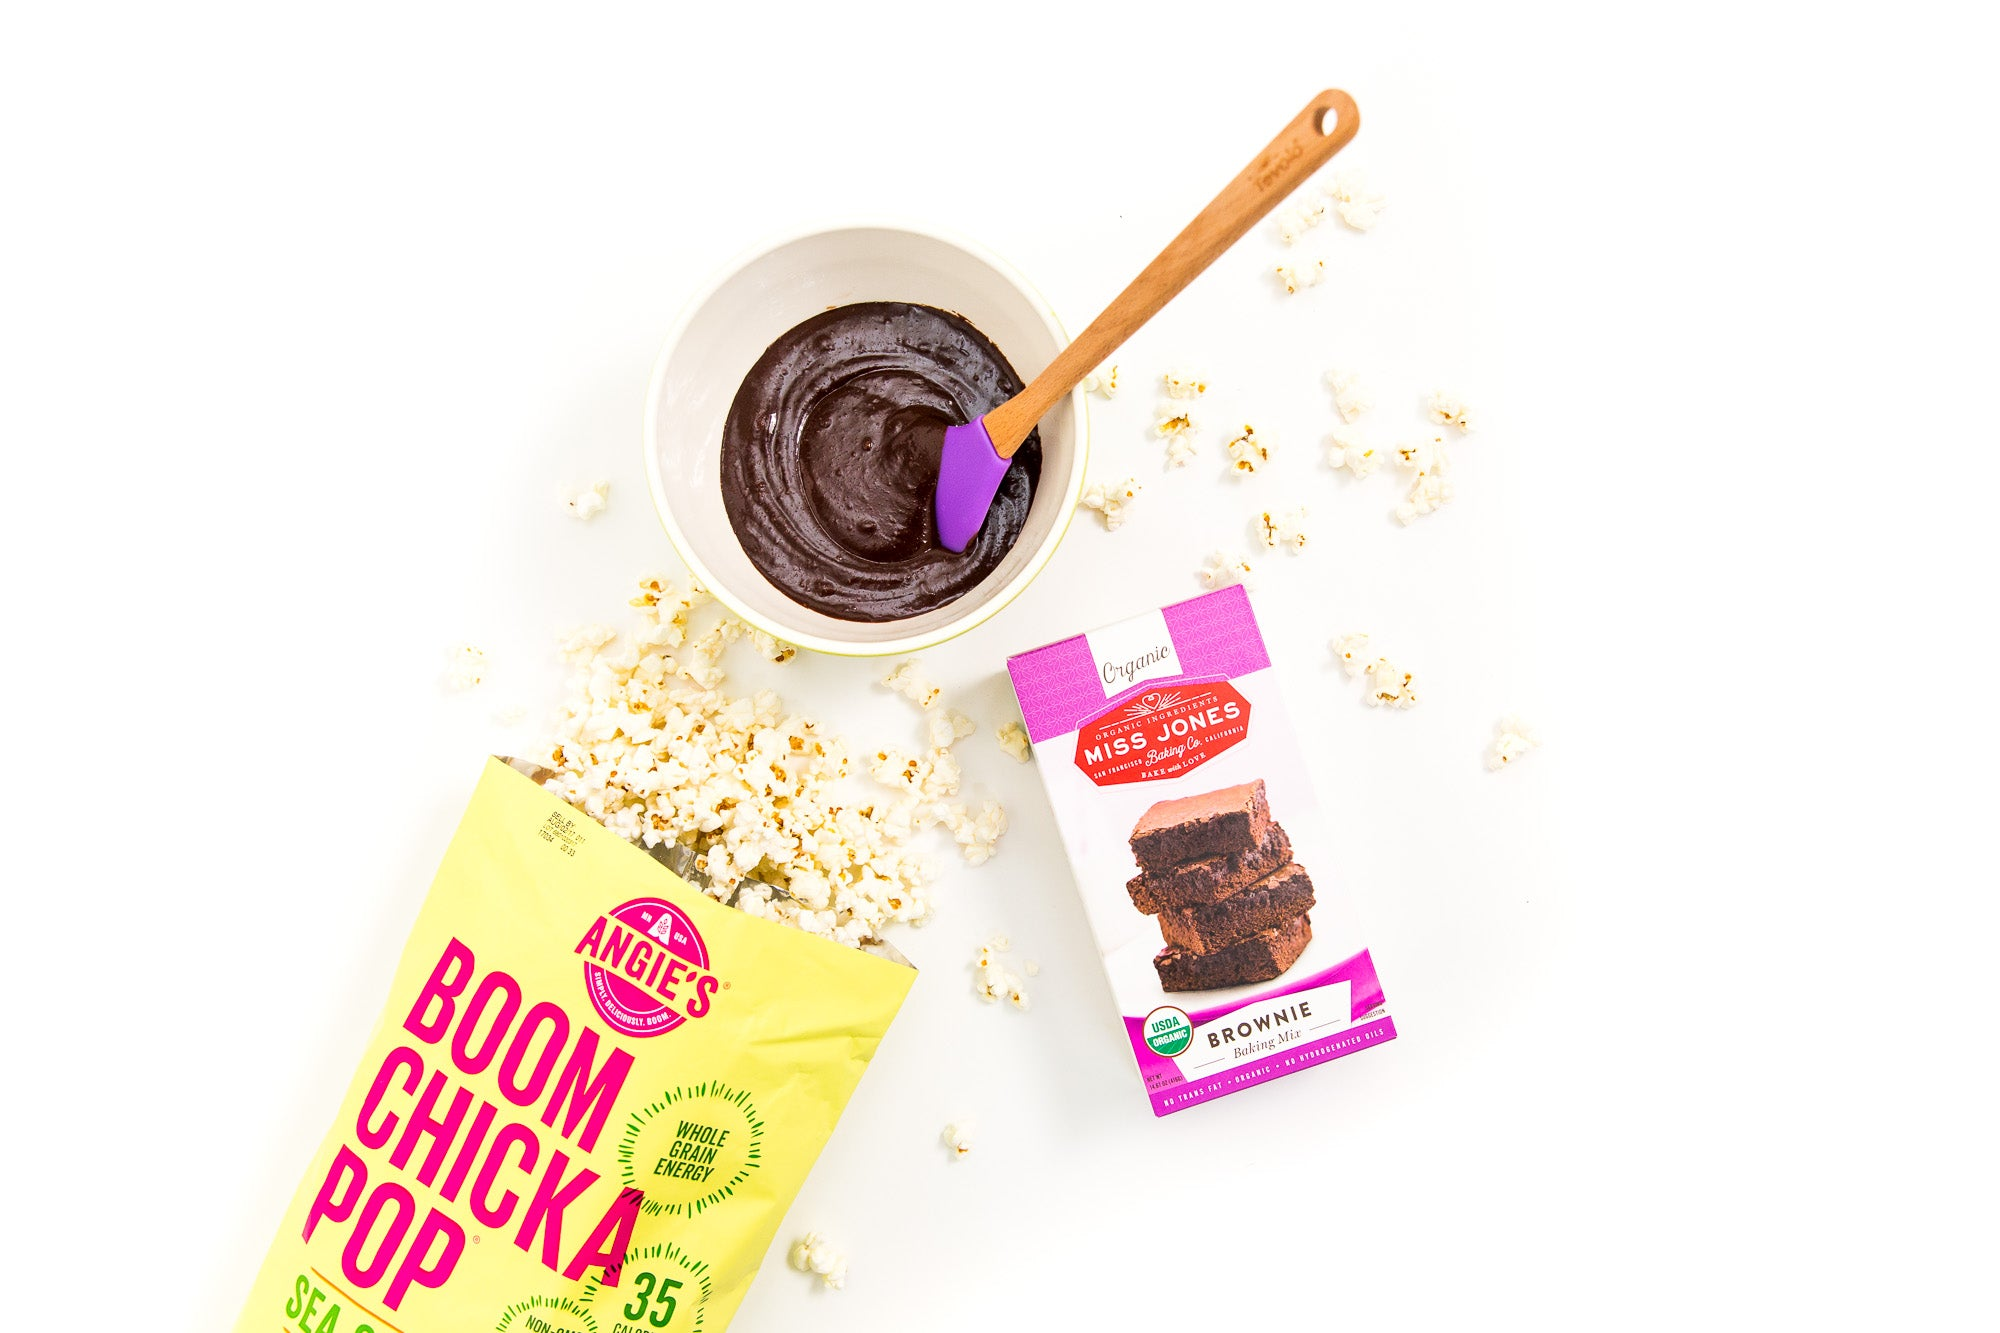 Image from above of a box of Miss Jones Brownie Mix next to a bag of Boom Chicka Pop Sea Salt Popcorn and a bowl of chocolate for Miss Jones Baking Co Popcorn Brownies Recipe